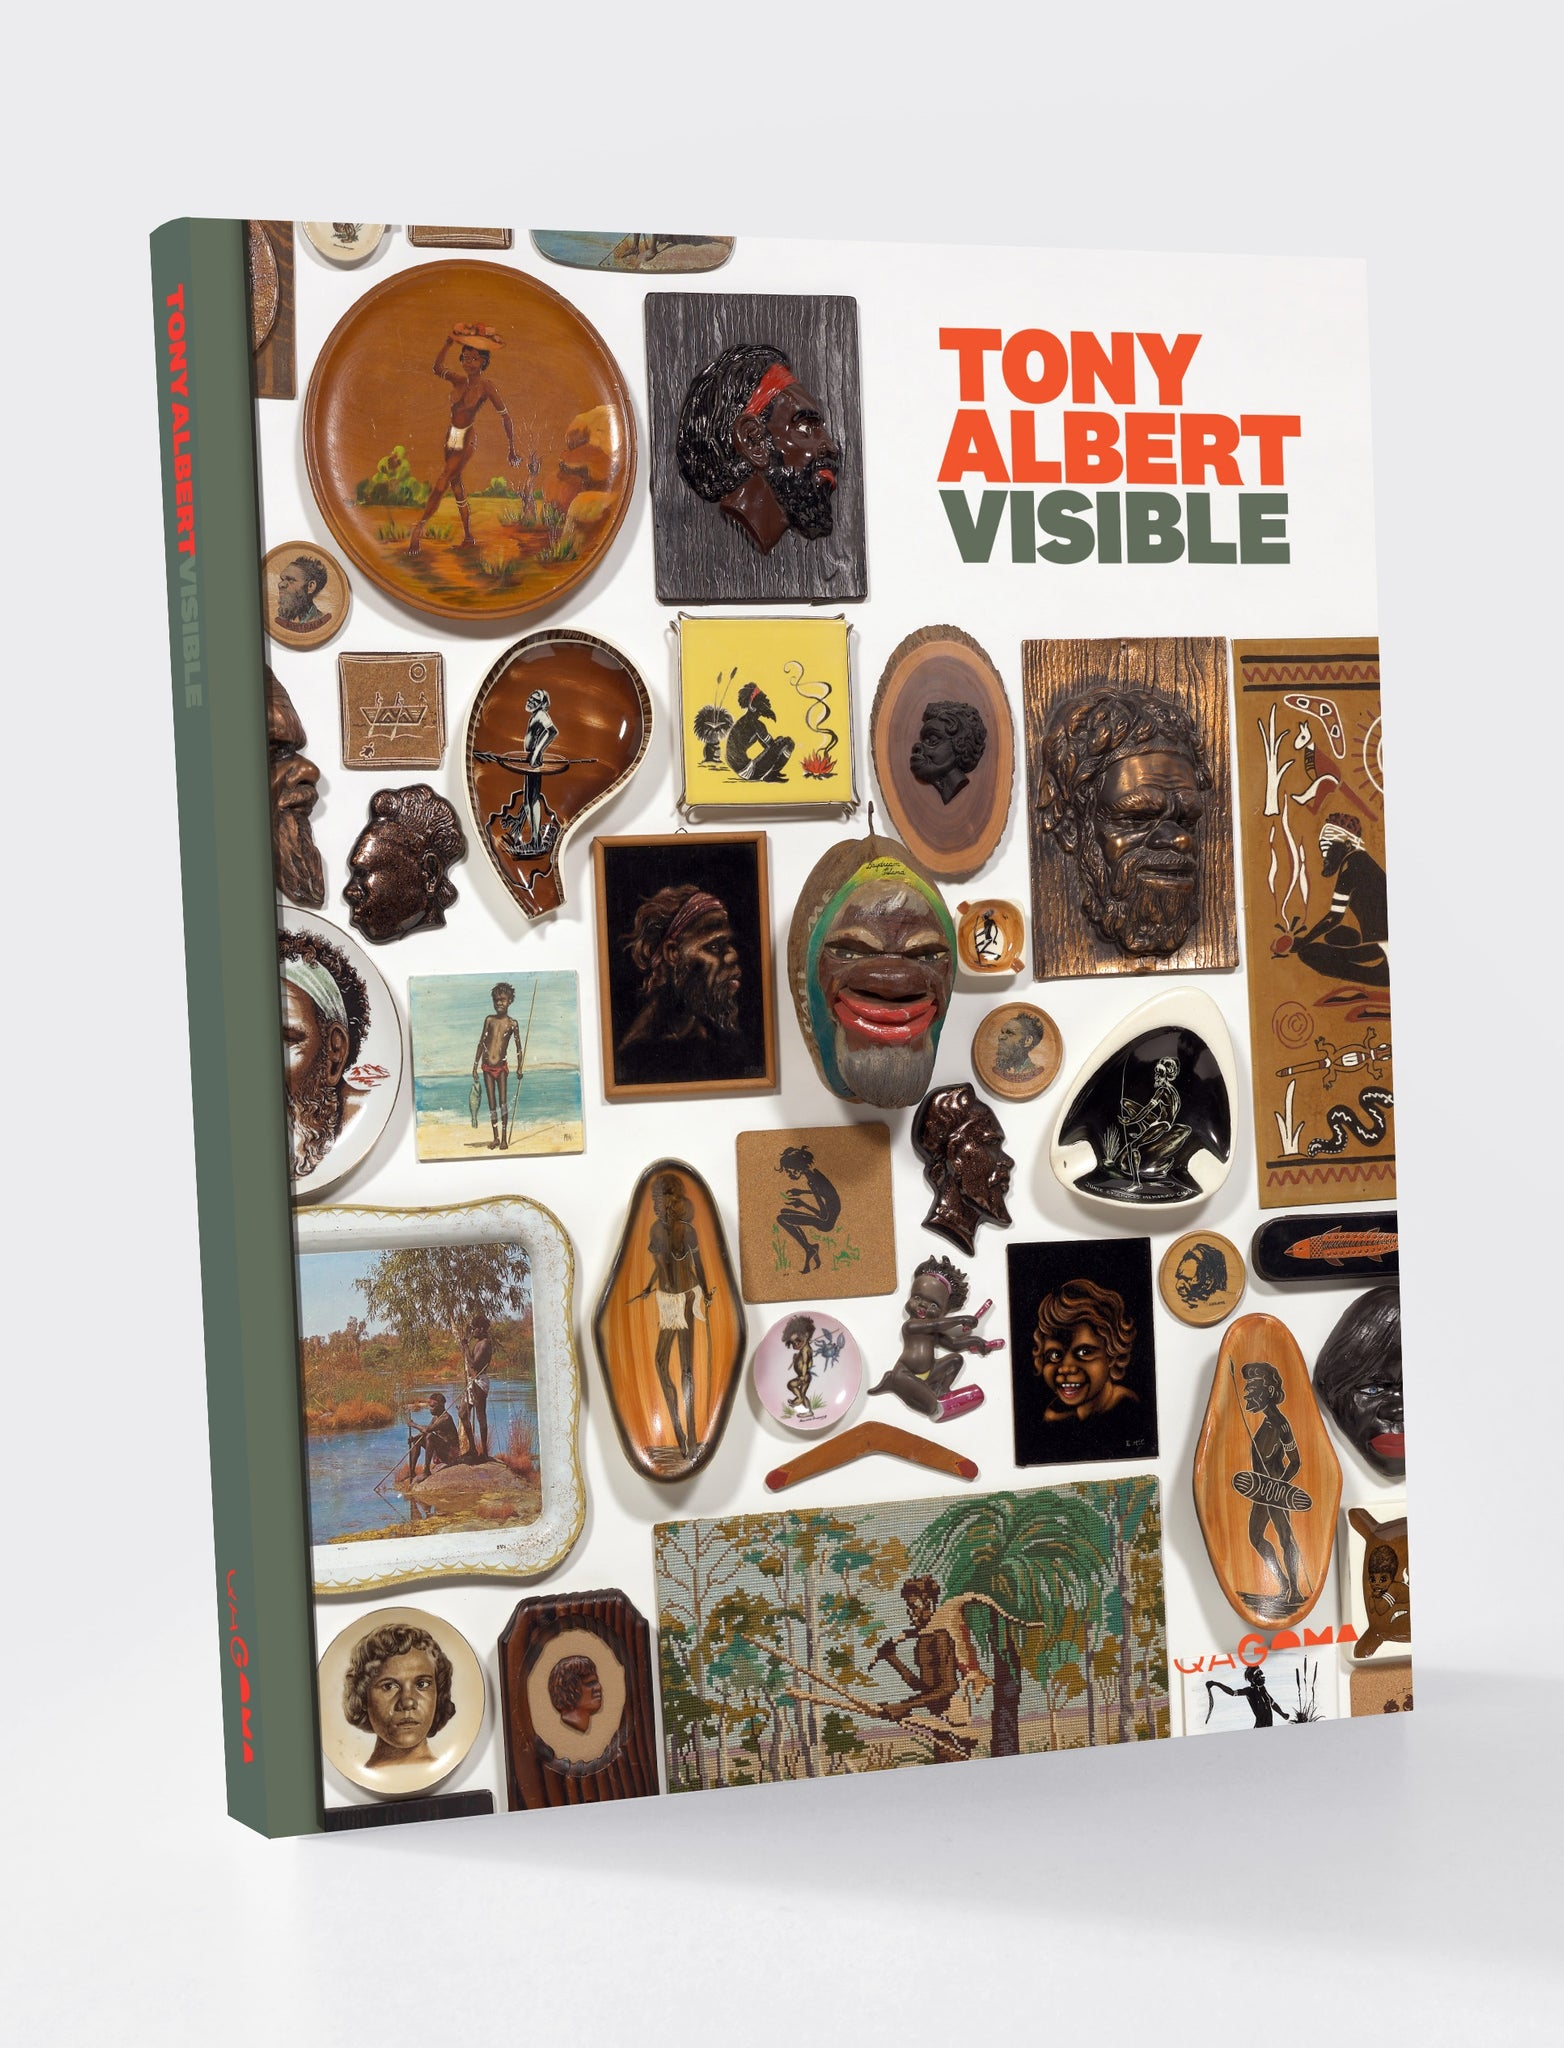 Tony Albert: Visible